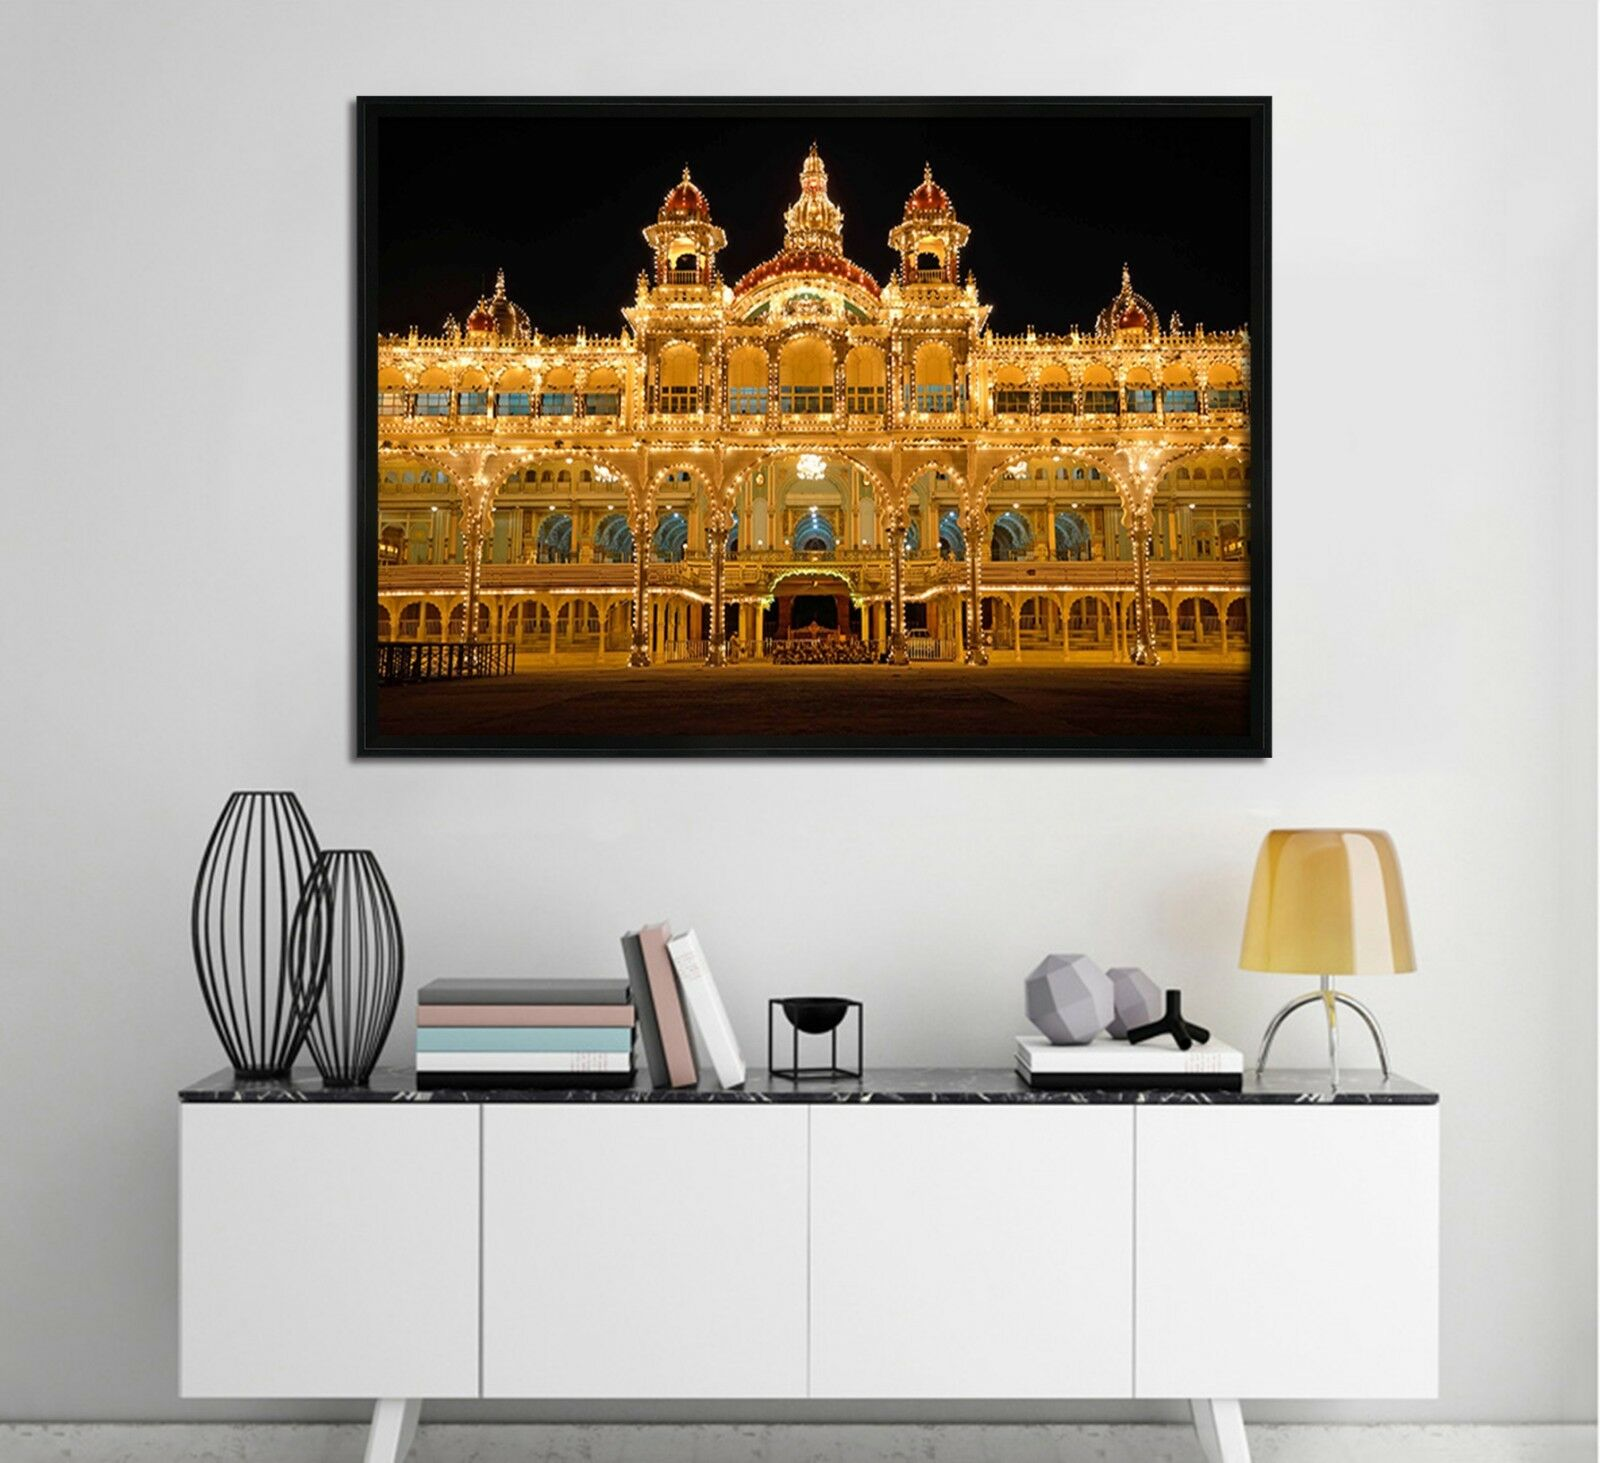 3D Palace 54 Fake Framed Poster Home Decor Print Painting Unique Art Summer